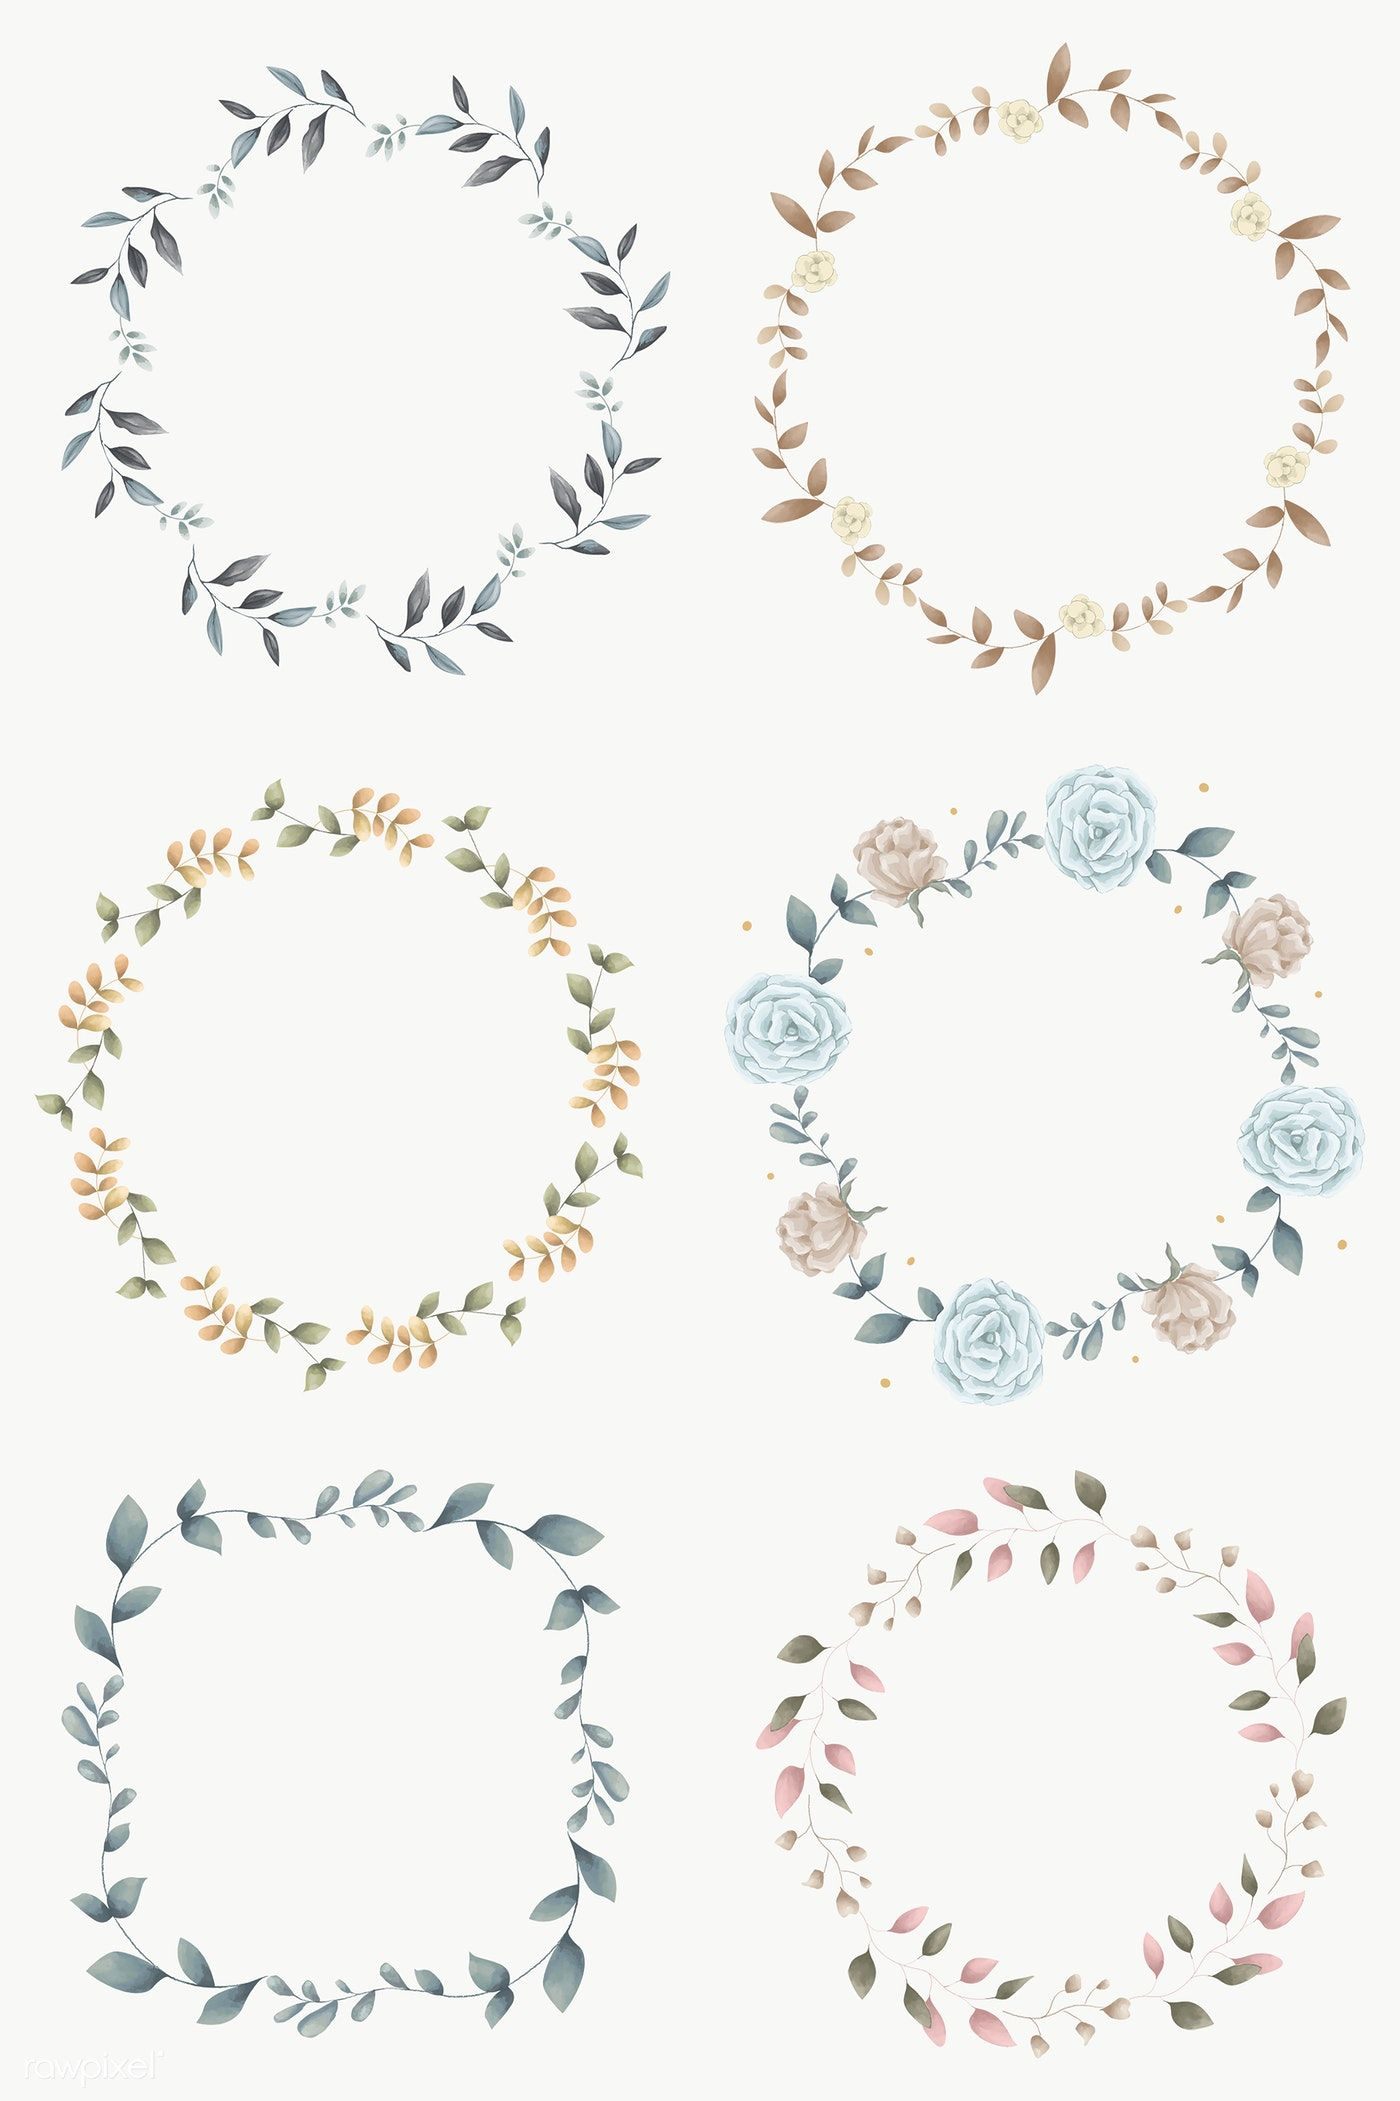 Download Premium Png Of Blank Leafy Frame Design Set Transparent Png In 2020 Frame Design Floral Wreath Watercolor Outline Designs